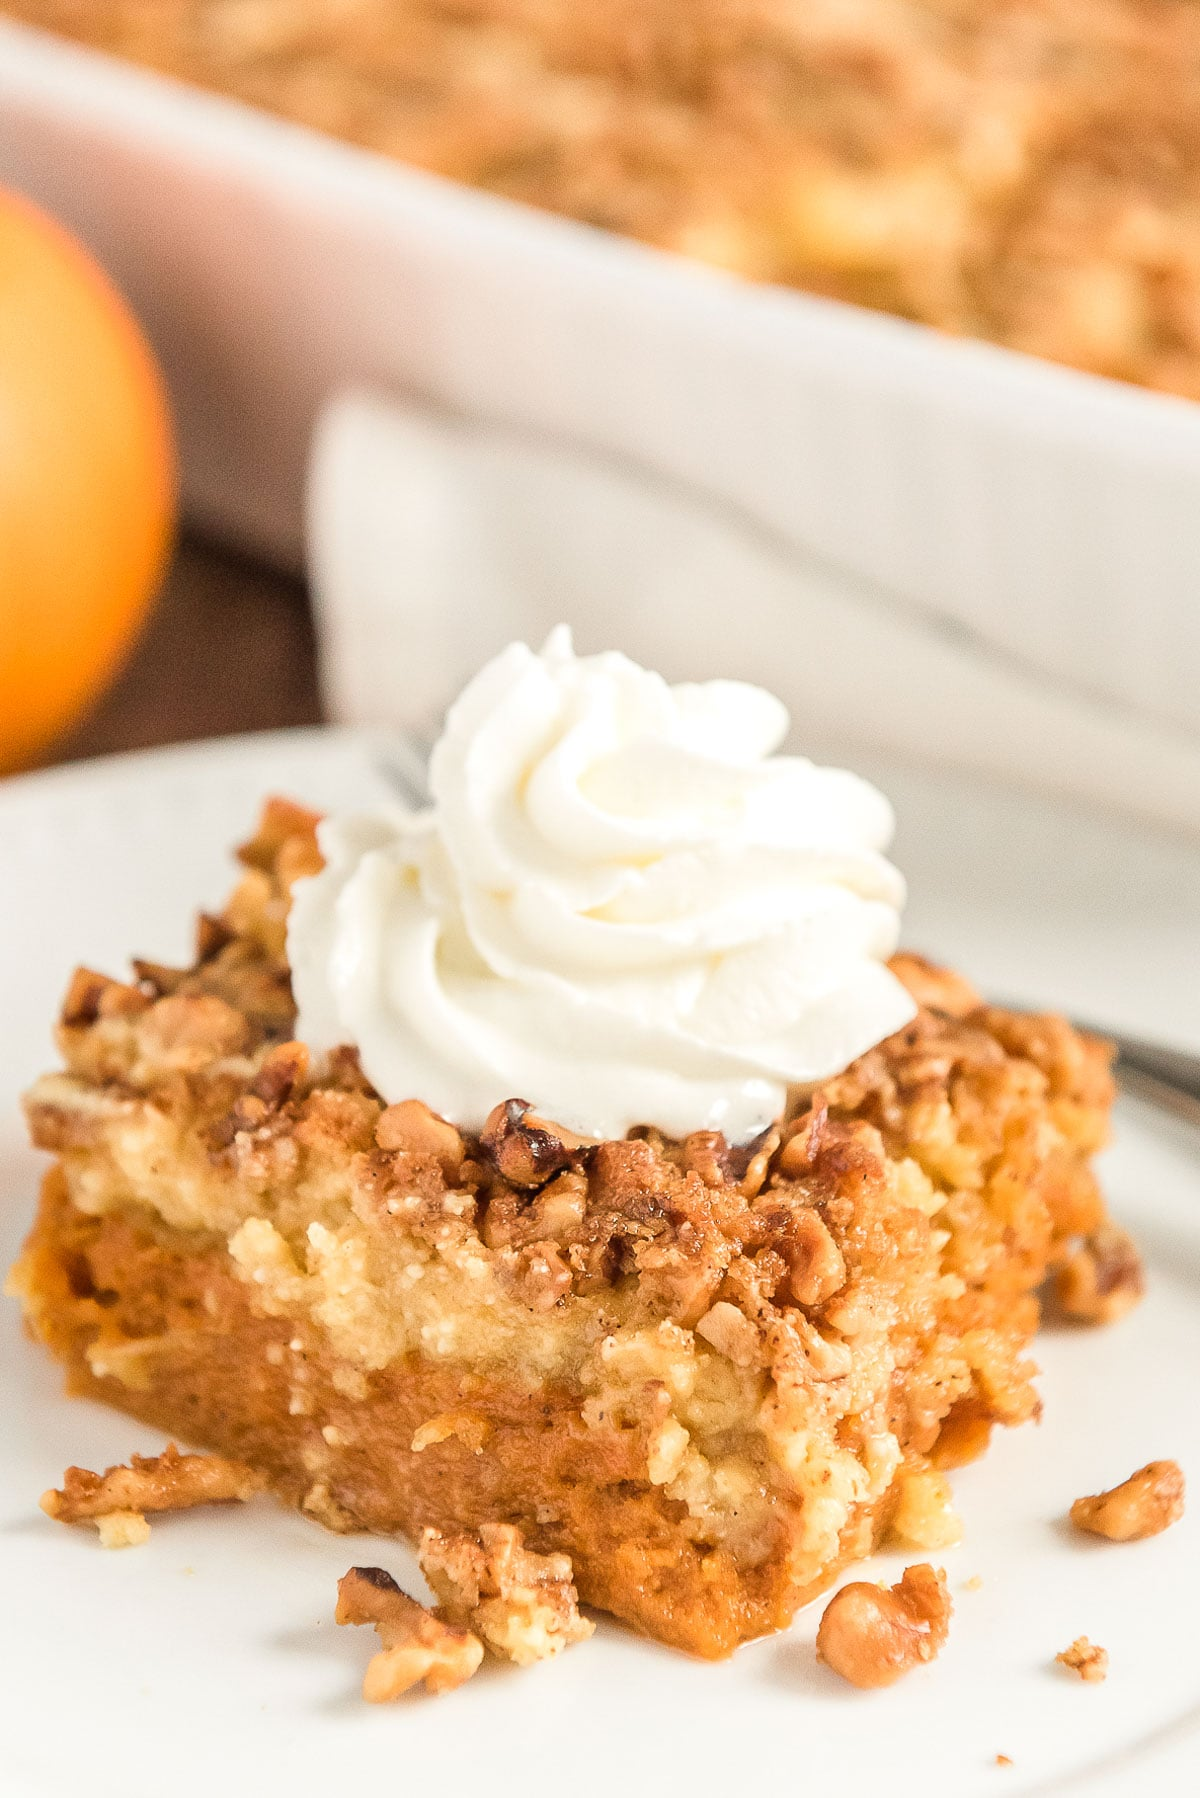 Pumpkin Dump Cake | Here's 15 of the Best Pumpkin Desserts for Fall including pumpkin pie, pumpkin bread, pumpkin cookies and more! Head on over for all the recipes for these delicious and easy pumpkin desserts. #pumpkindesserts #pumpkinrecipes #falldesserts